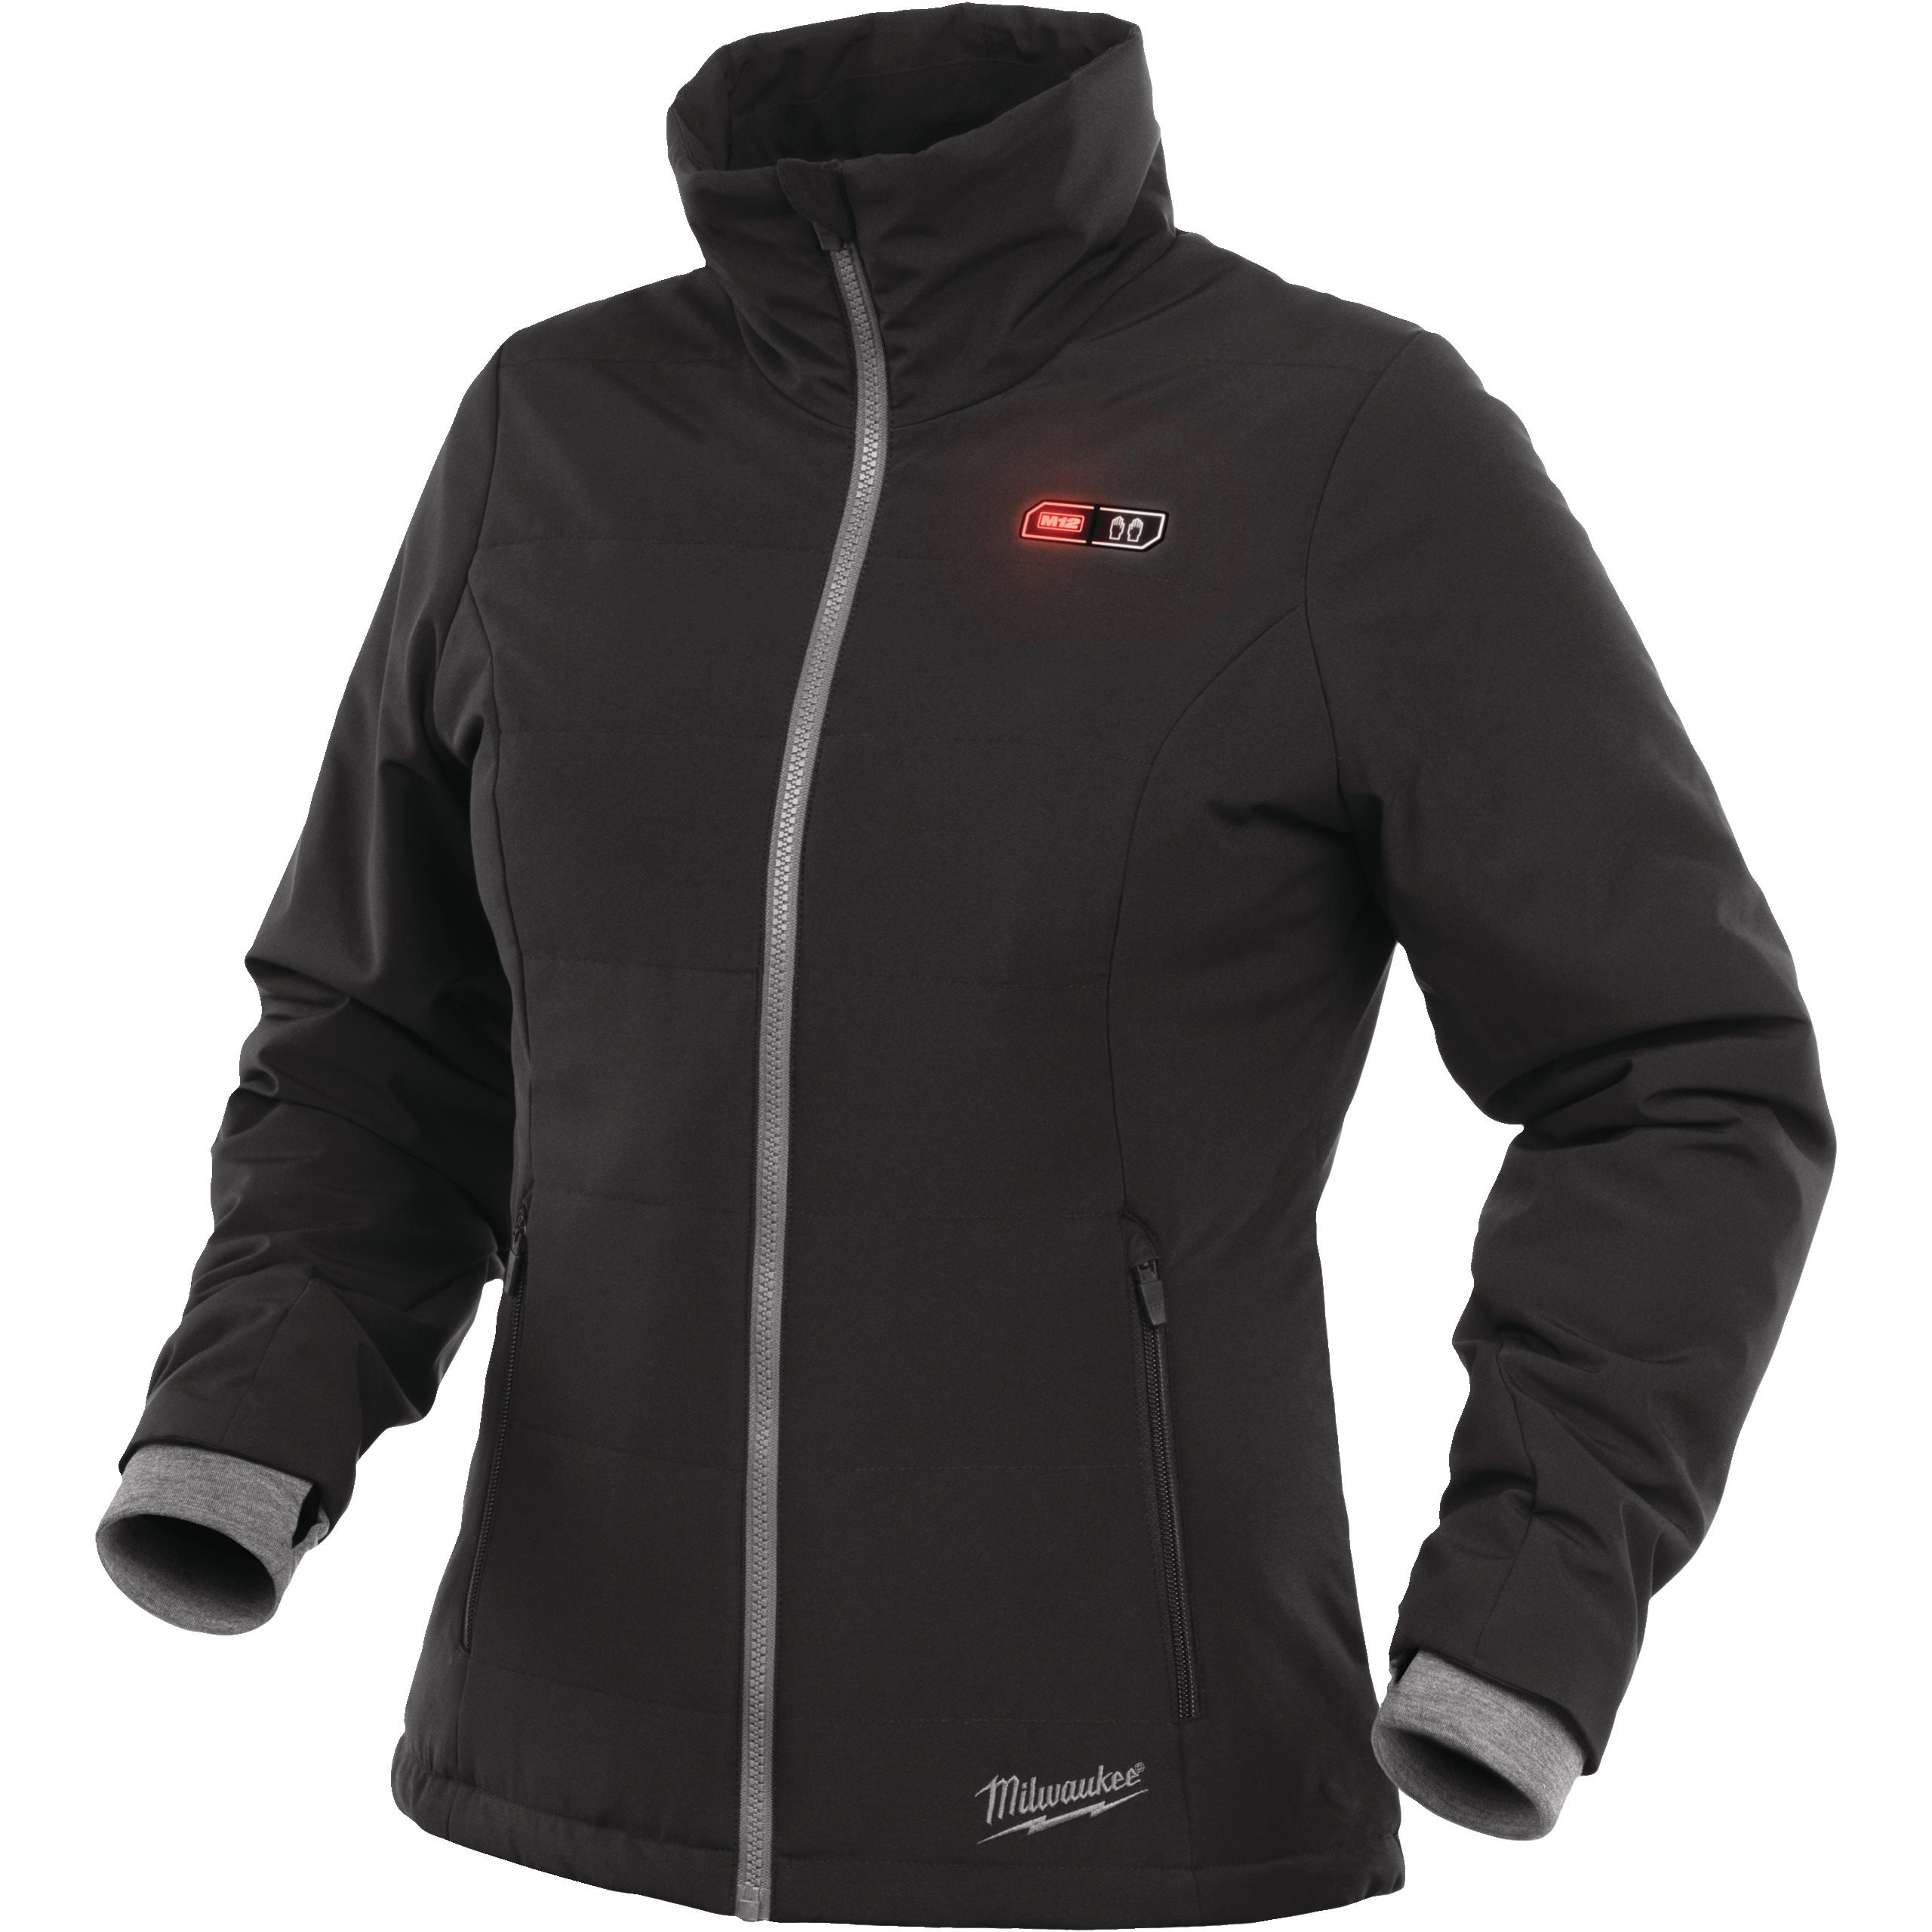 Without Battery S Milwaukee Womens Thermal Down Jacket in Black Size